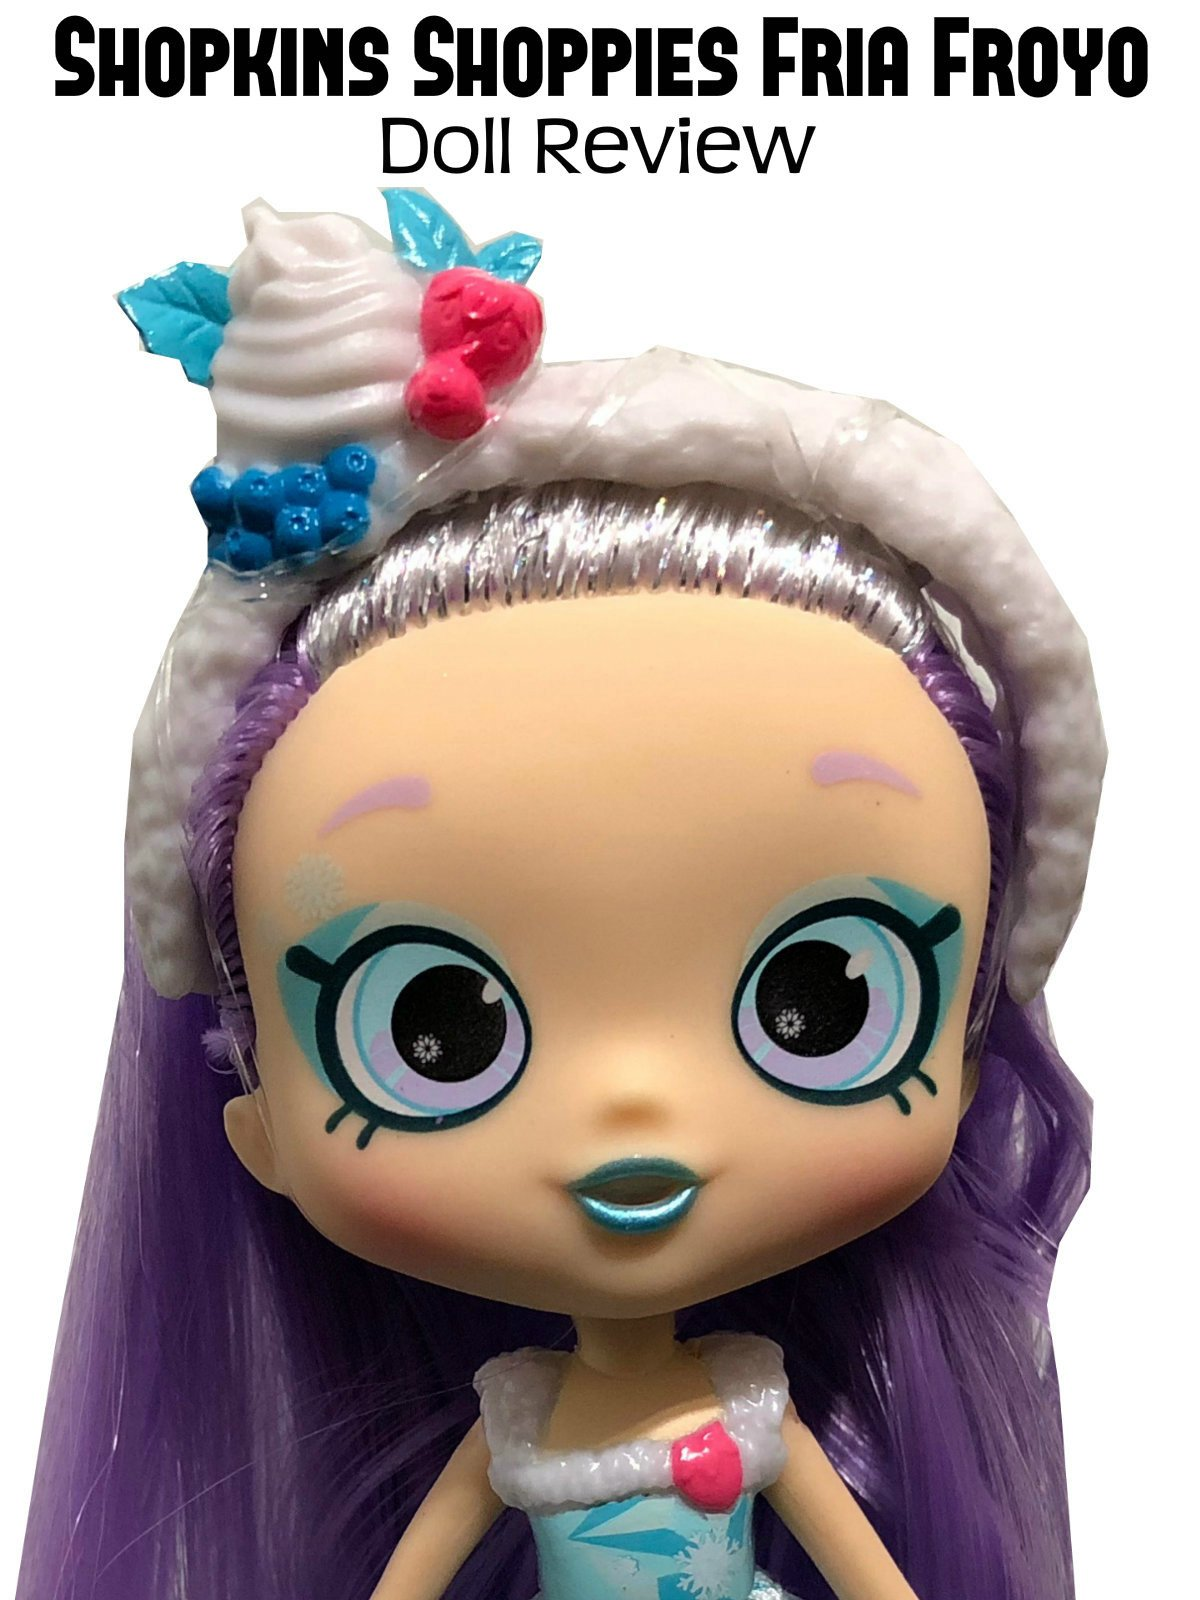 Review: Shopkins Shoppies Fria Froyo Doll Review